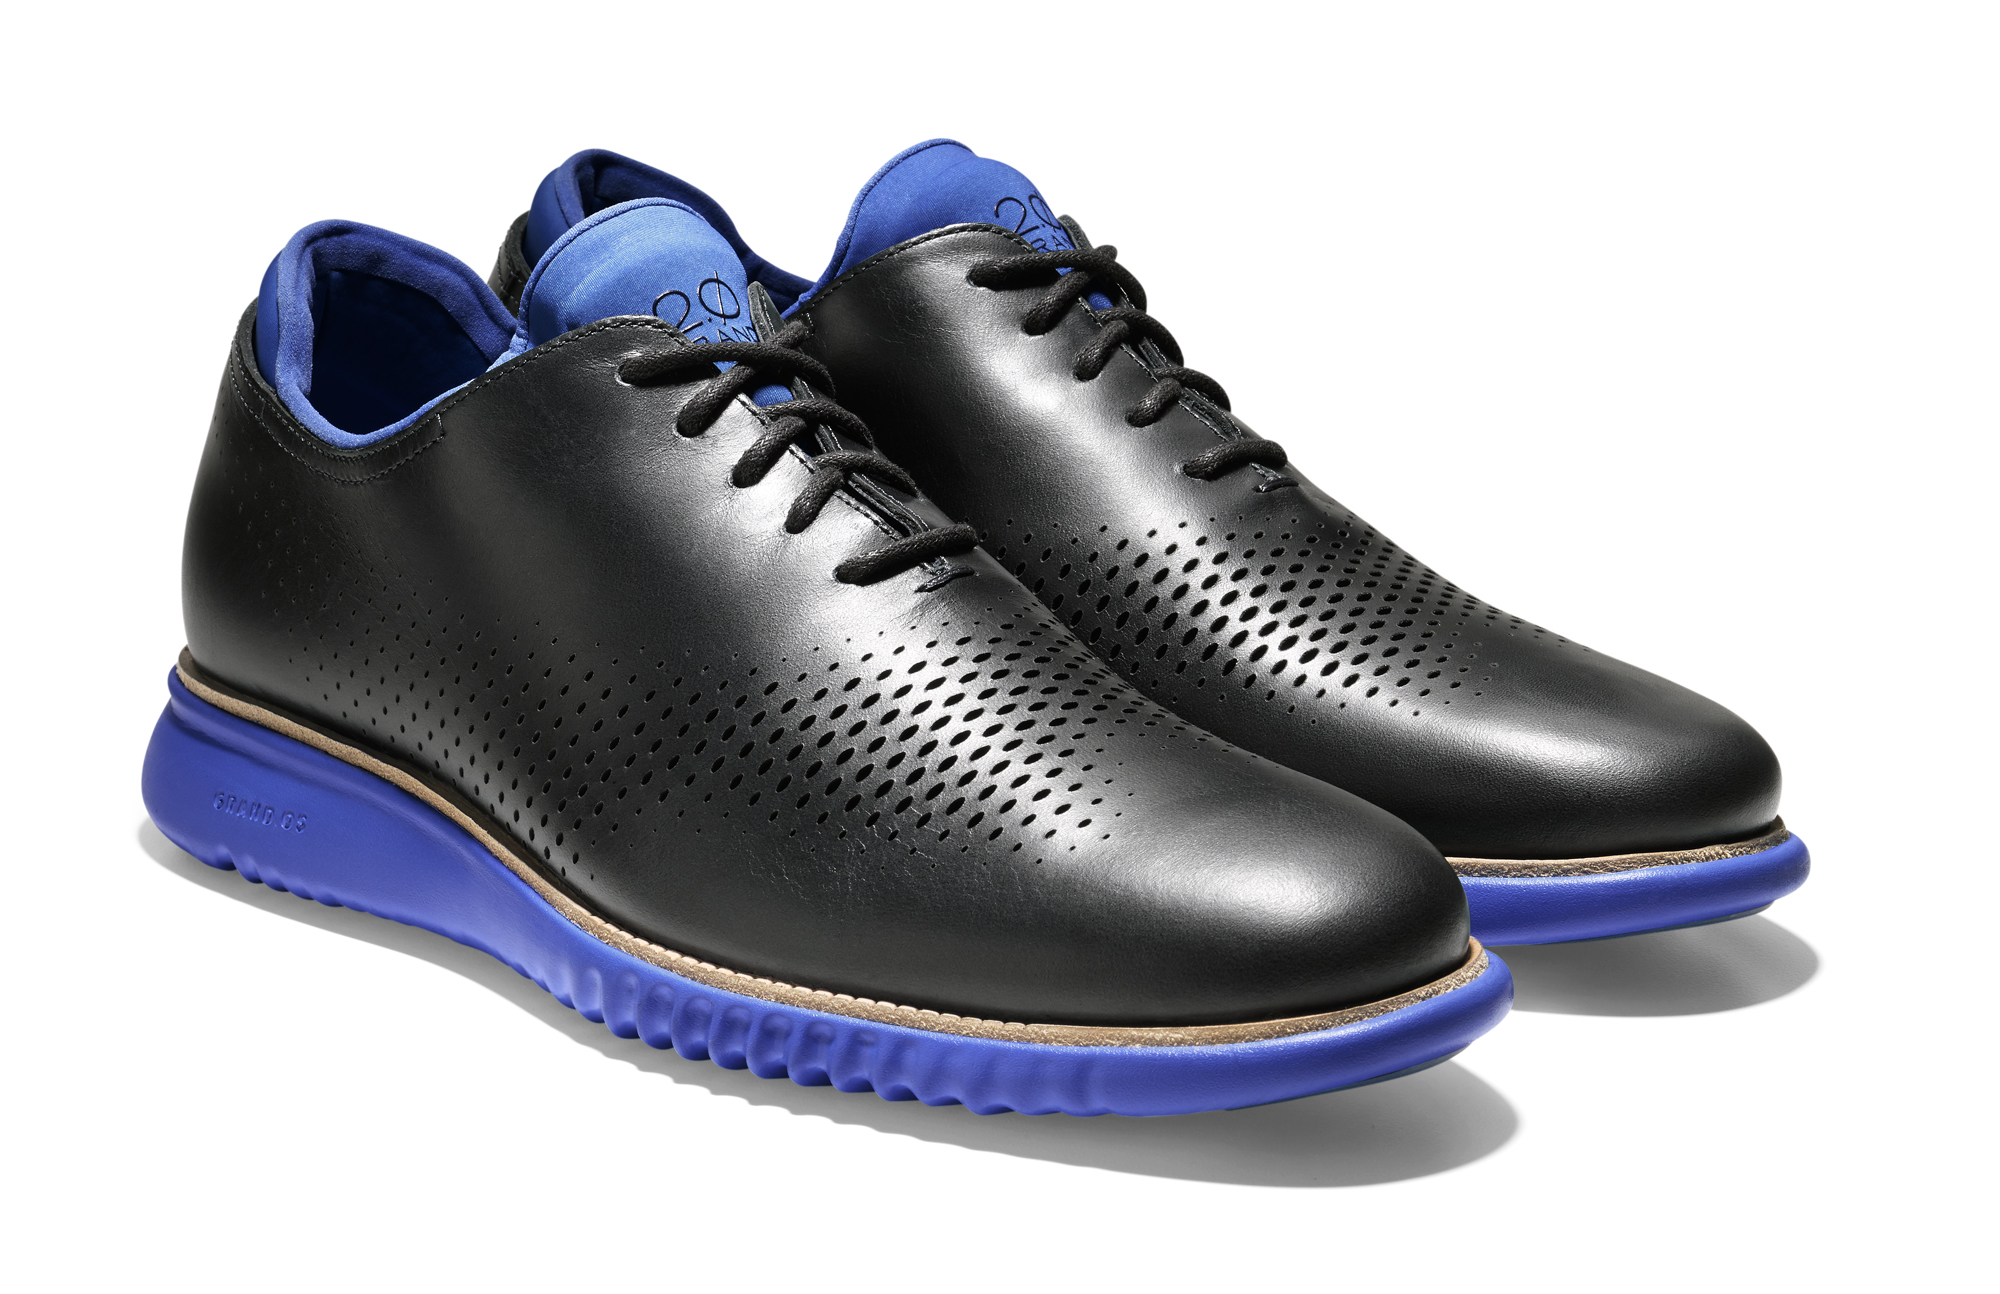 Cole Haan_2. ZERØGRAND Wing Oxford_BlackBristol Blue